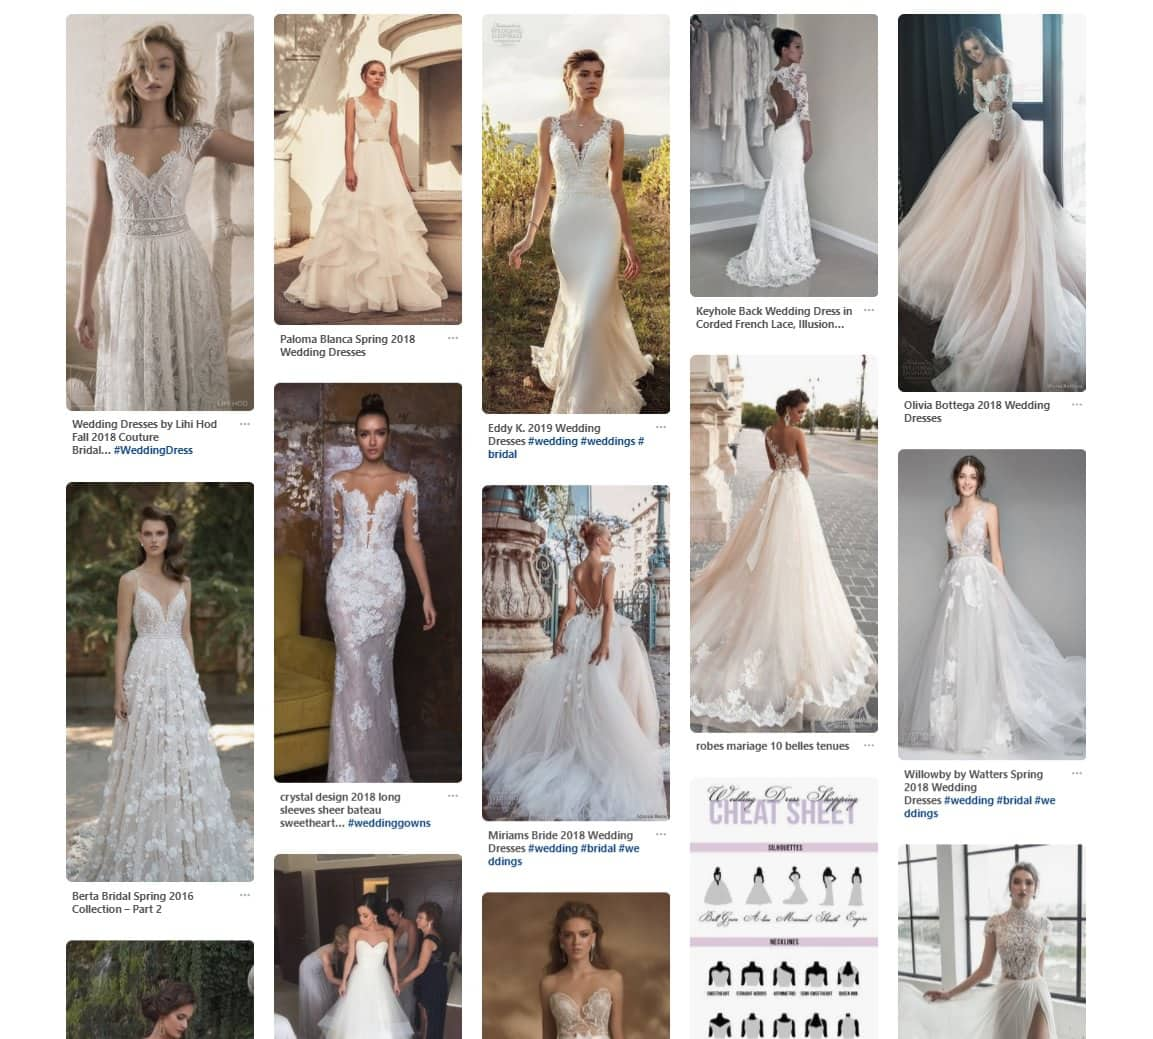 Wedding dresses inspiration - replace it